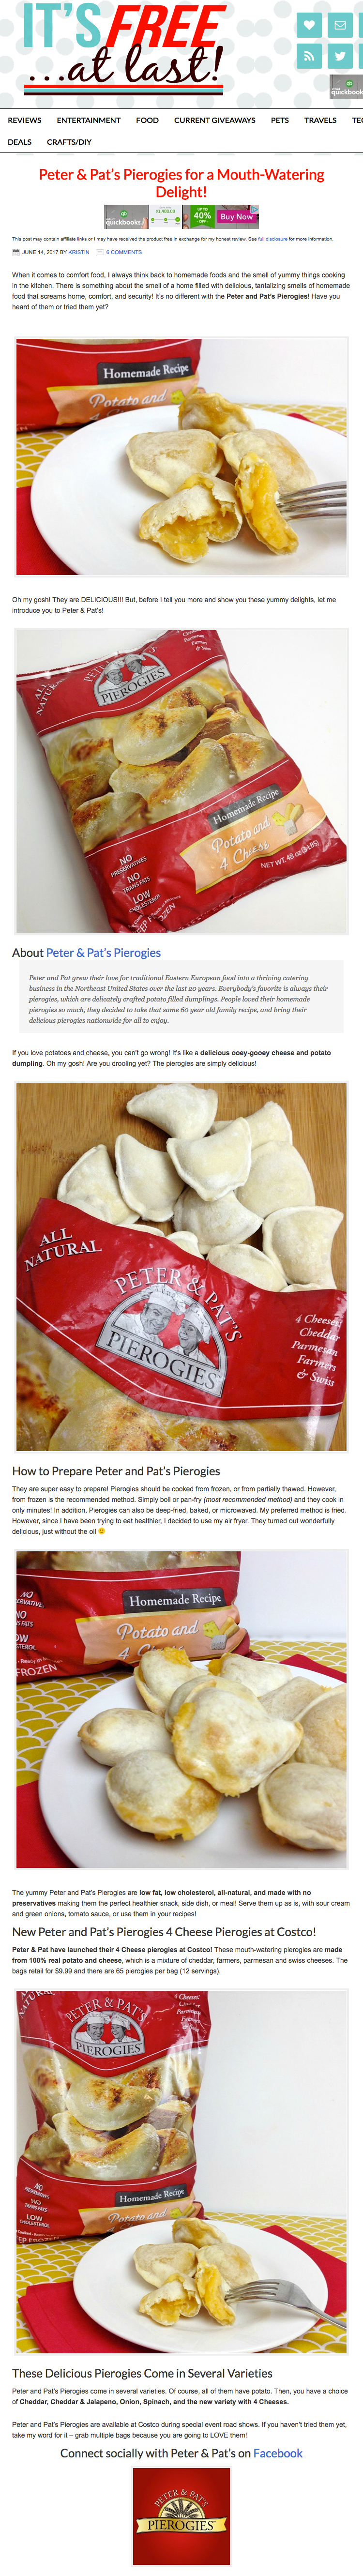 Peter & Pat's Pierogies featured on It's Free At Last. www.itsfreeatlast.com